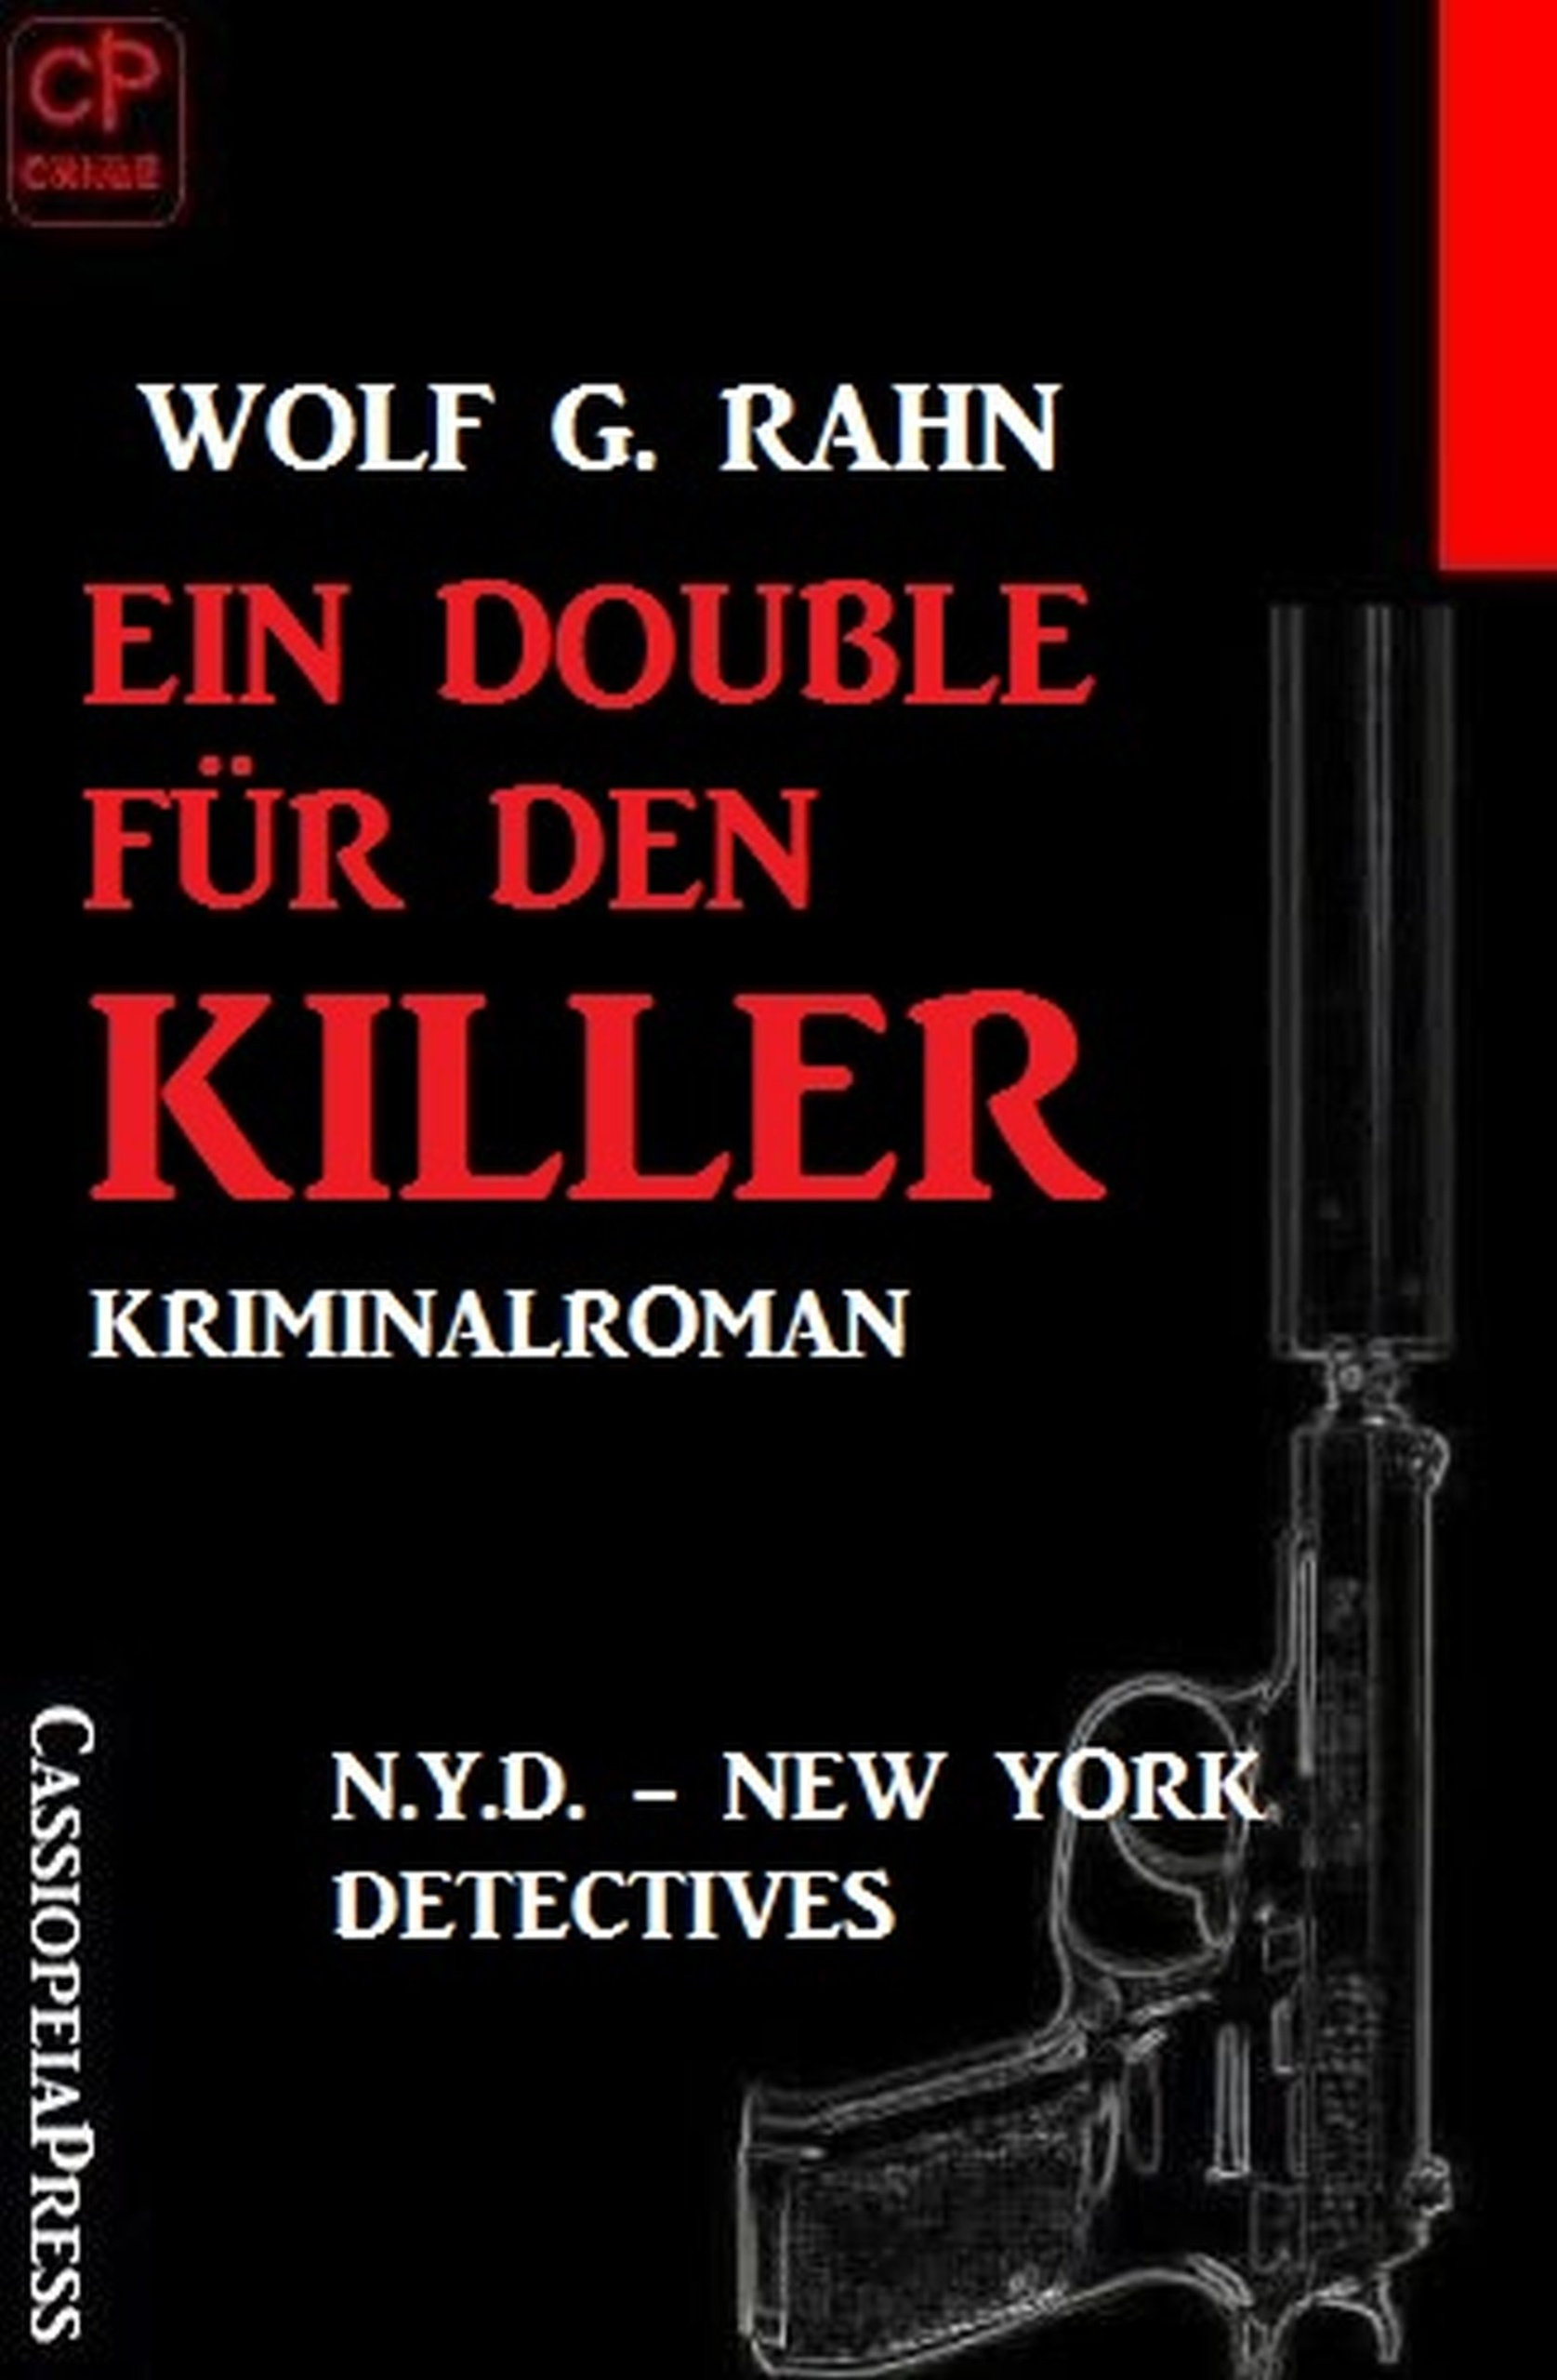 Ein Double für den Killer: N.Y.D. - New York Detectives